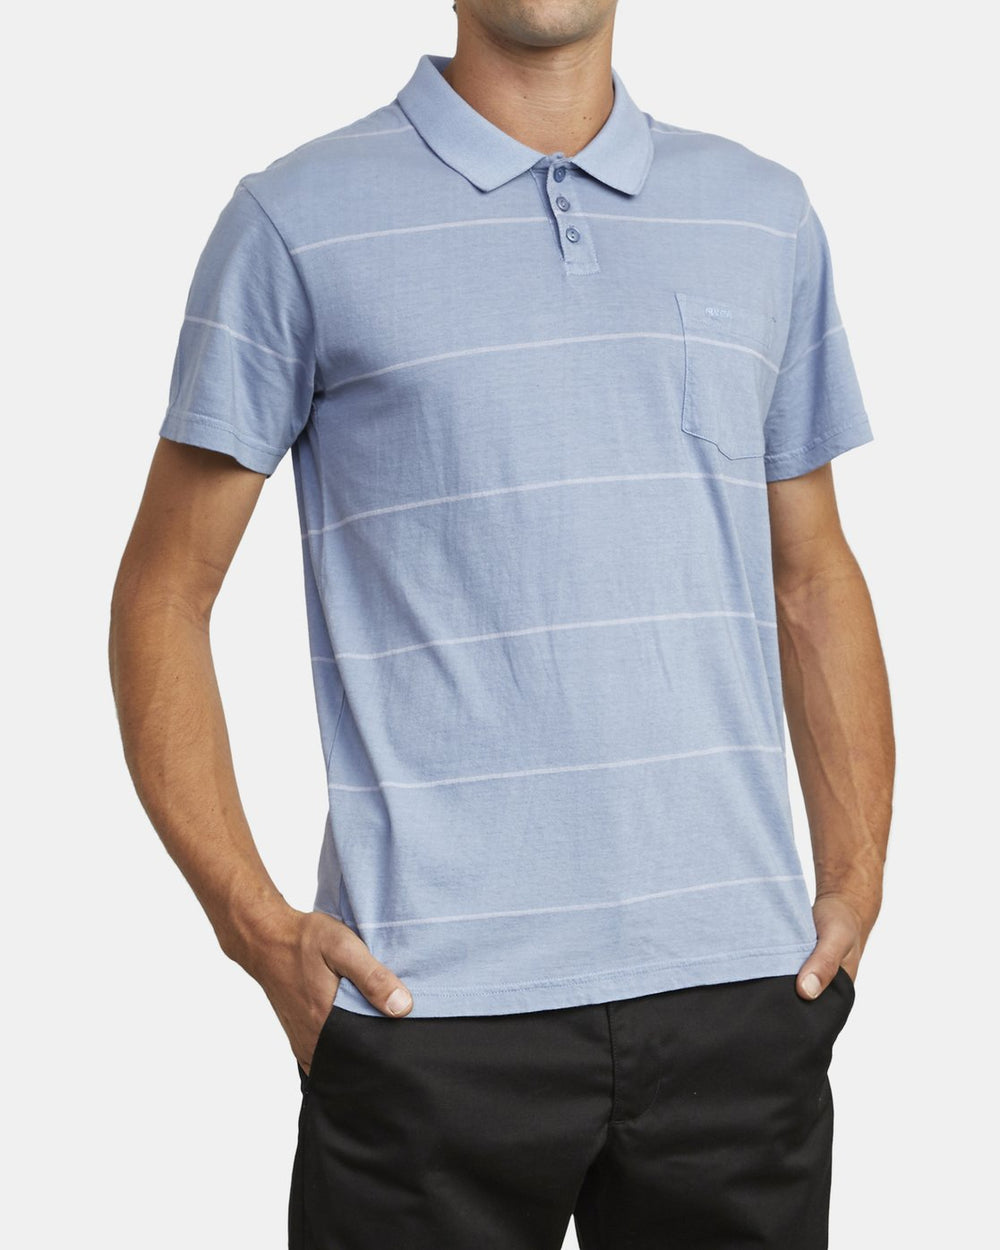 PTC STRIPE POLO SHORT SLEEVE SHIRT